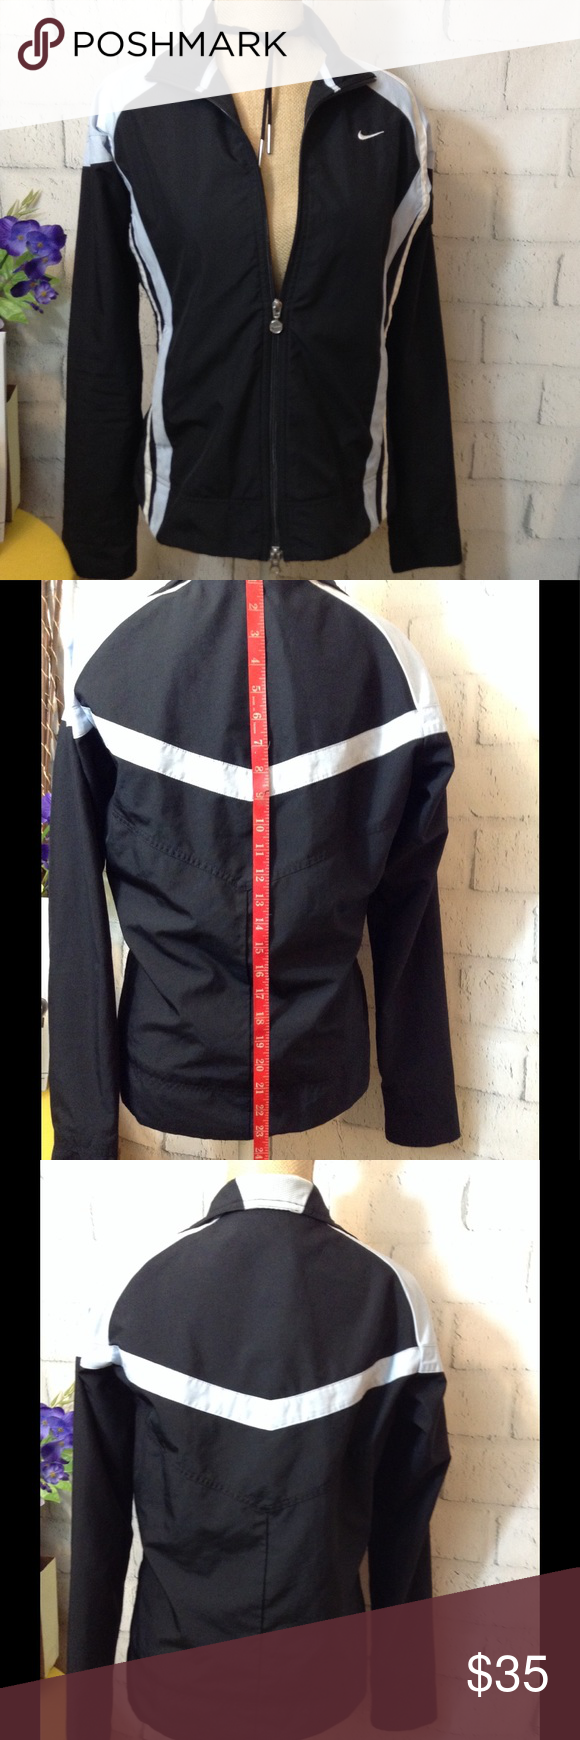 0db2d555495e NIKE⚡️LINED JACKET Size M⚡ Front Zippering with Black and light blue accent  striping. In GREAT condition.Interior pocket. Lined.